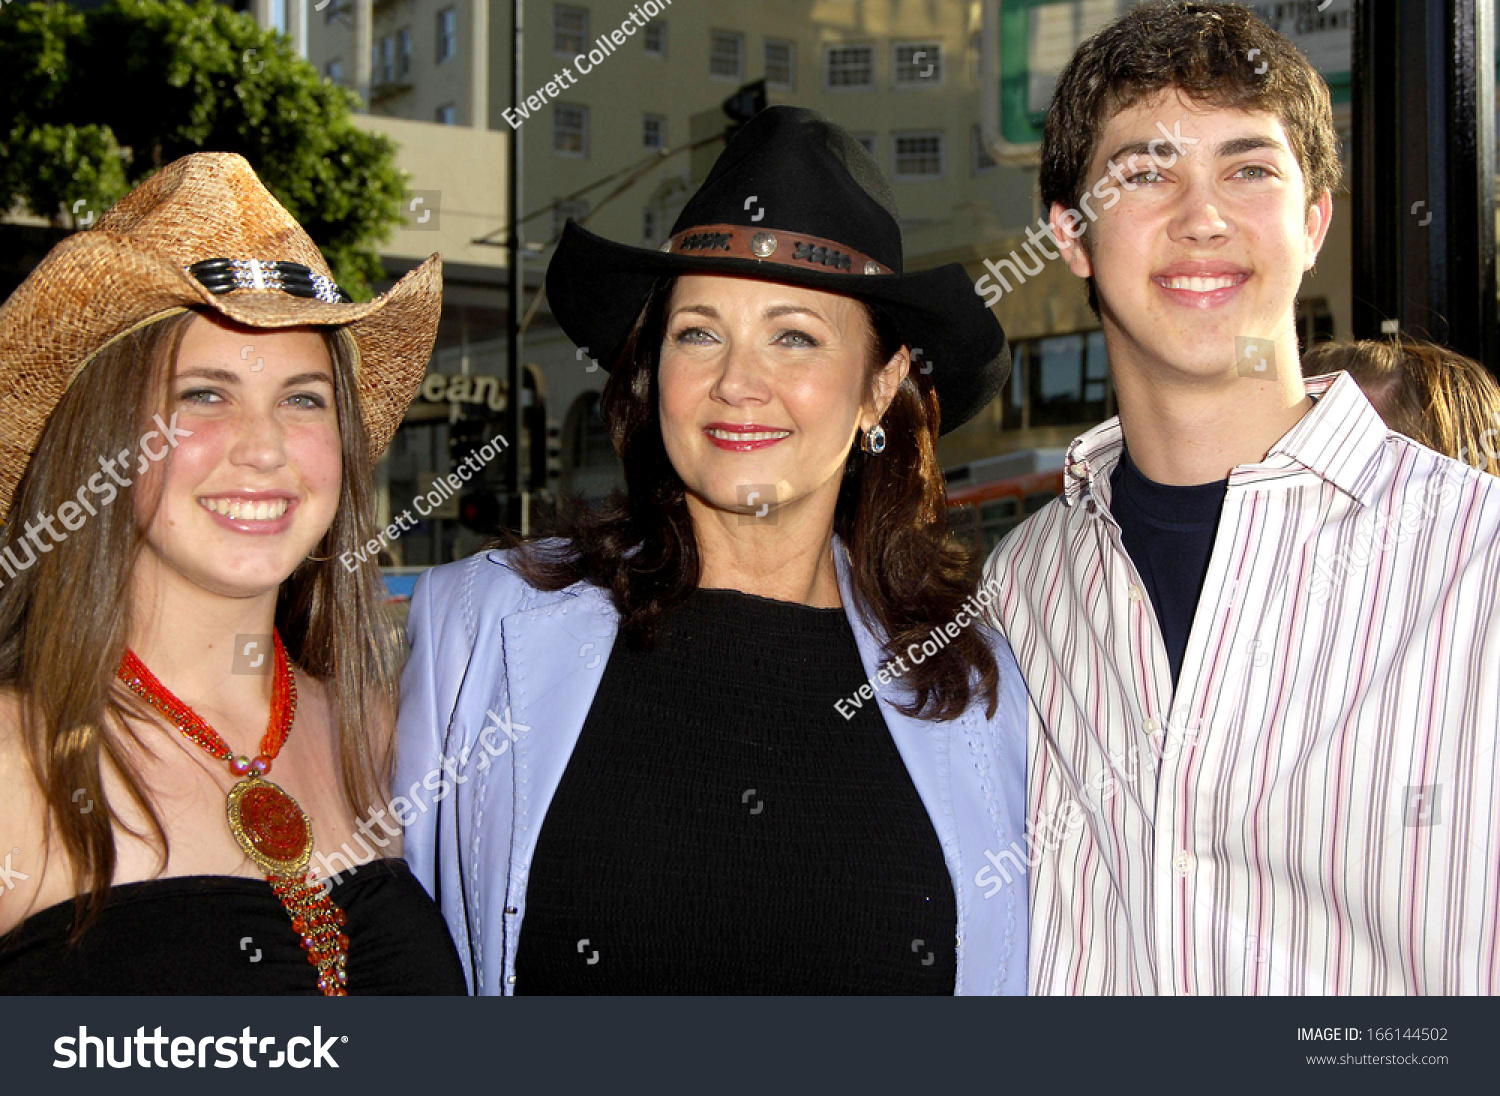 Lynda with her son James and daughter Jessica